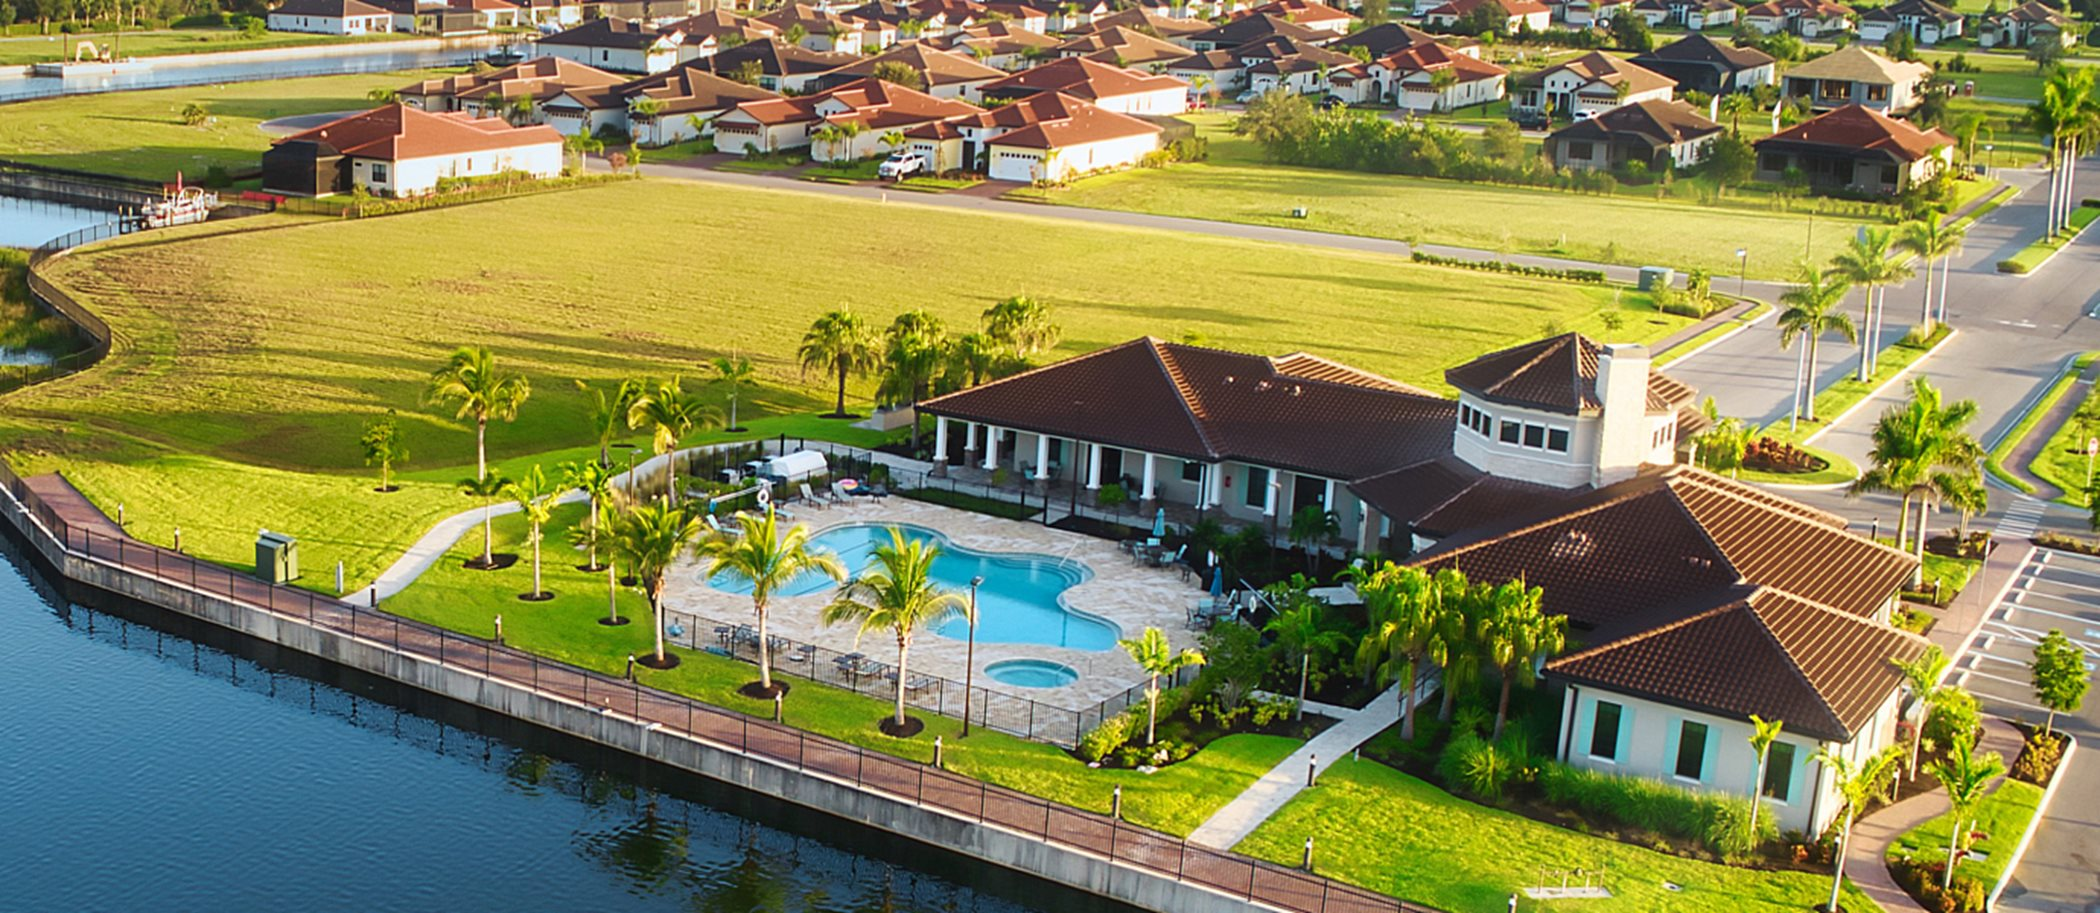 Sanctuary Cove Florida outdoors at waterfront homes in the beautiful city of Palmetto, FL.